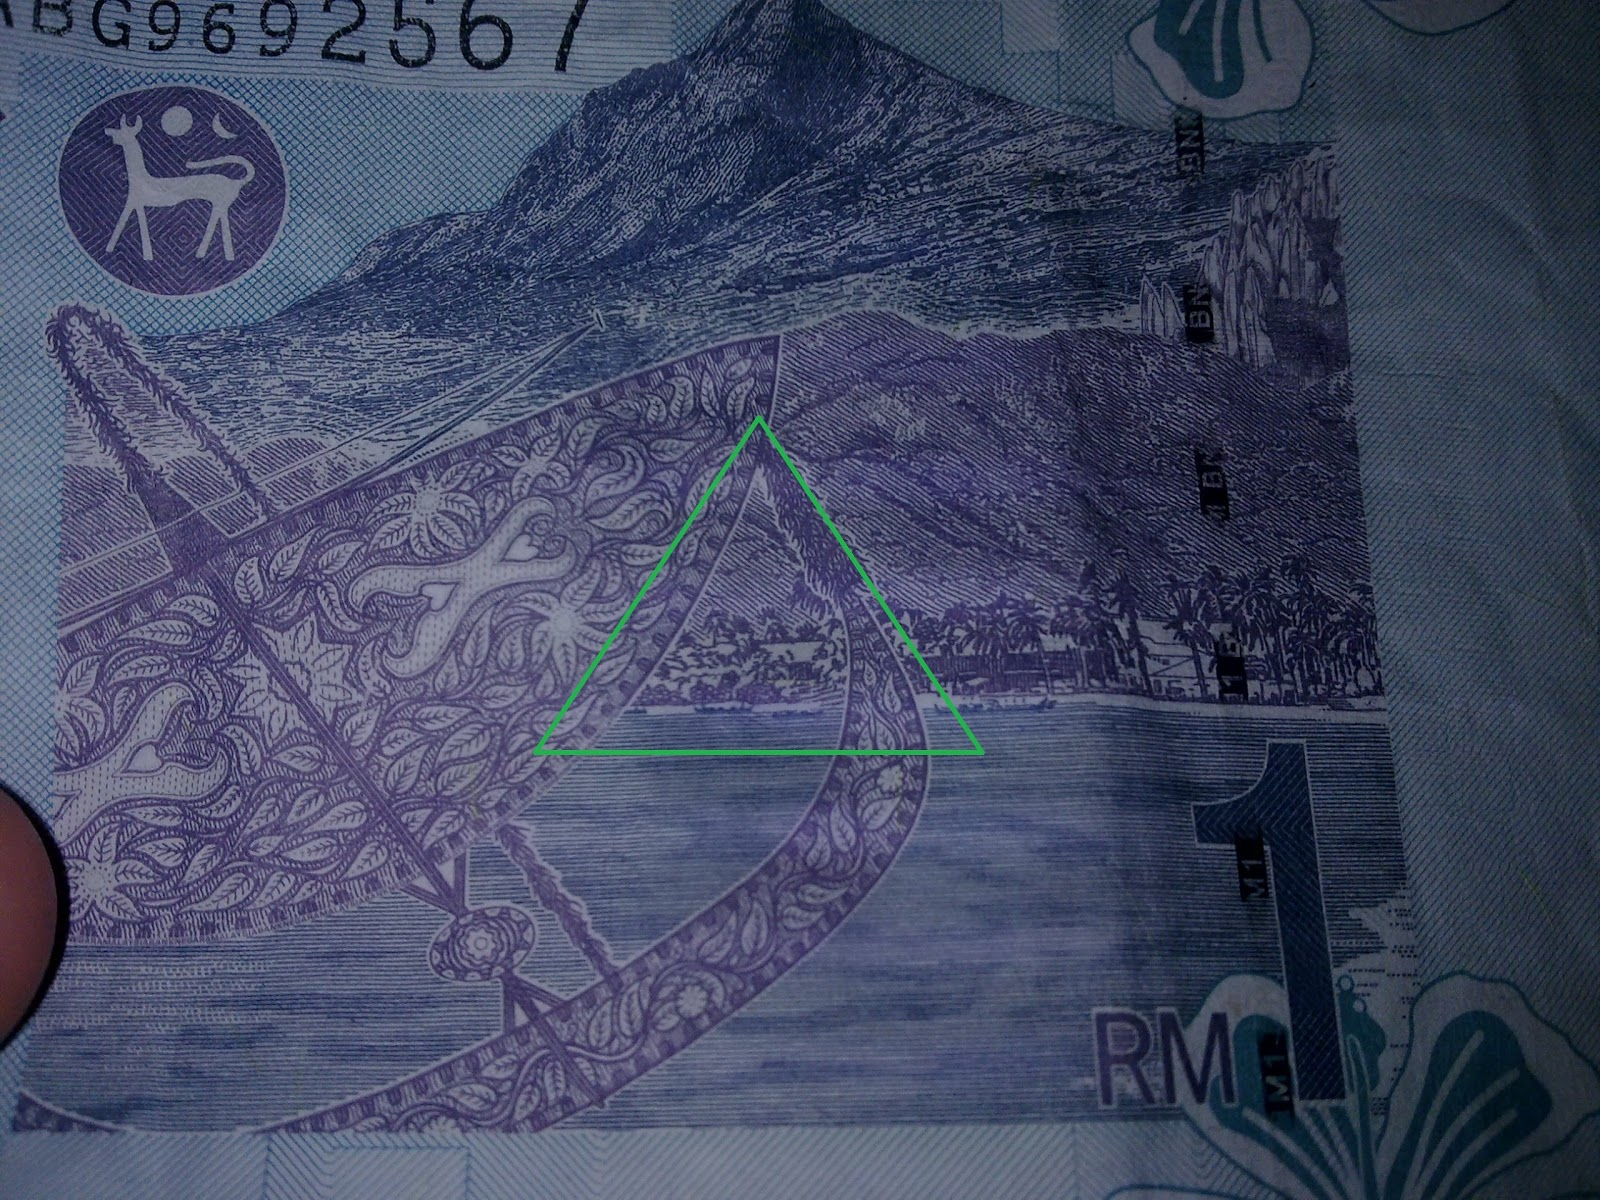 Illuminati symbol in rm1 note in the name of search to your surprise even rm1 has been revealed recently to have the symbol believe it or not look carefully at the picture below biocorpaavc